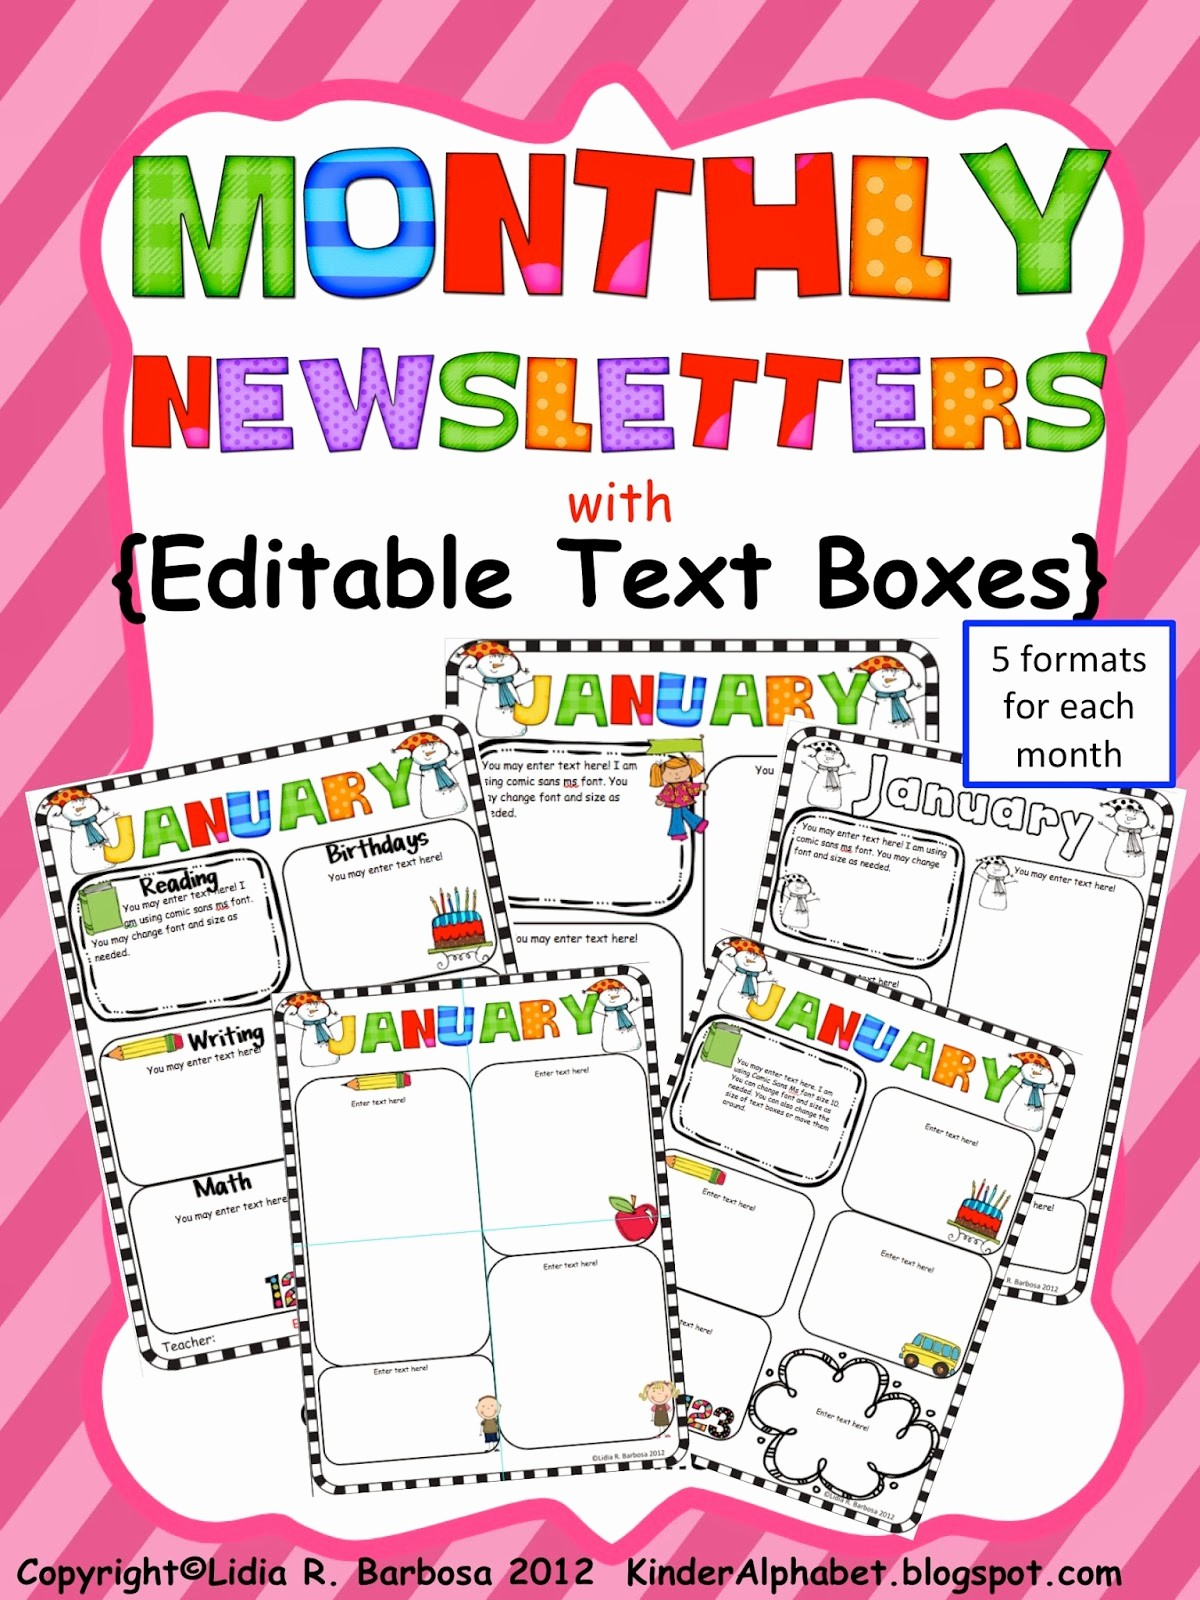 Newsletter for Parents From Teachers Luxury Kinder Alphabet — Teacher Resources In English and Spanish